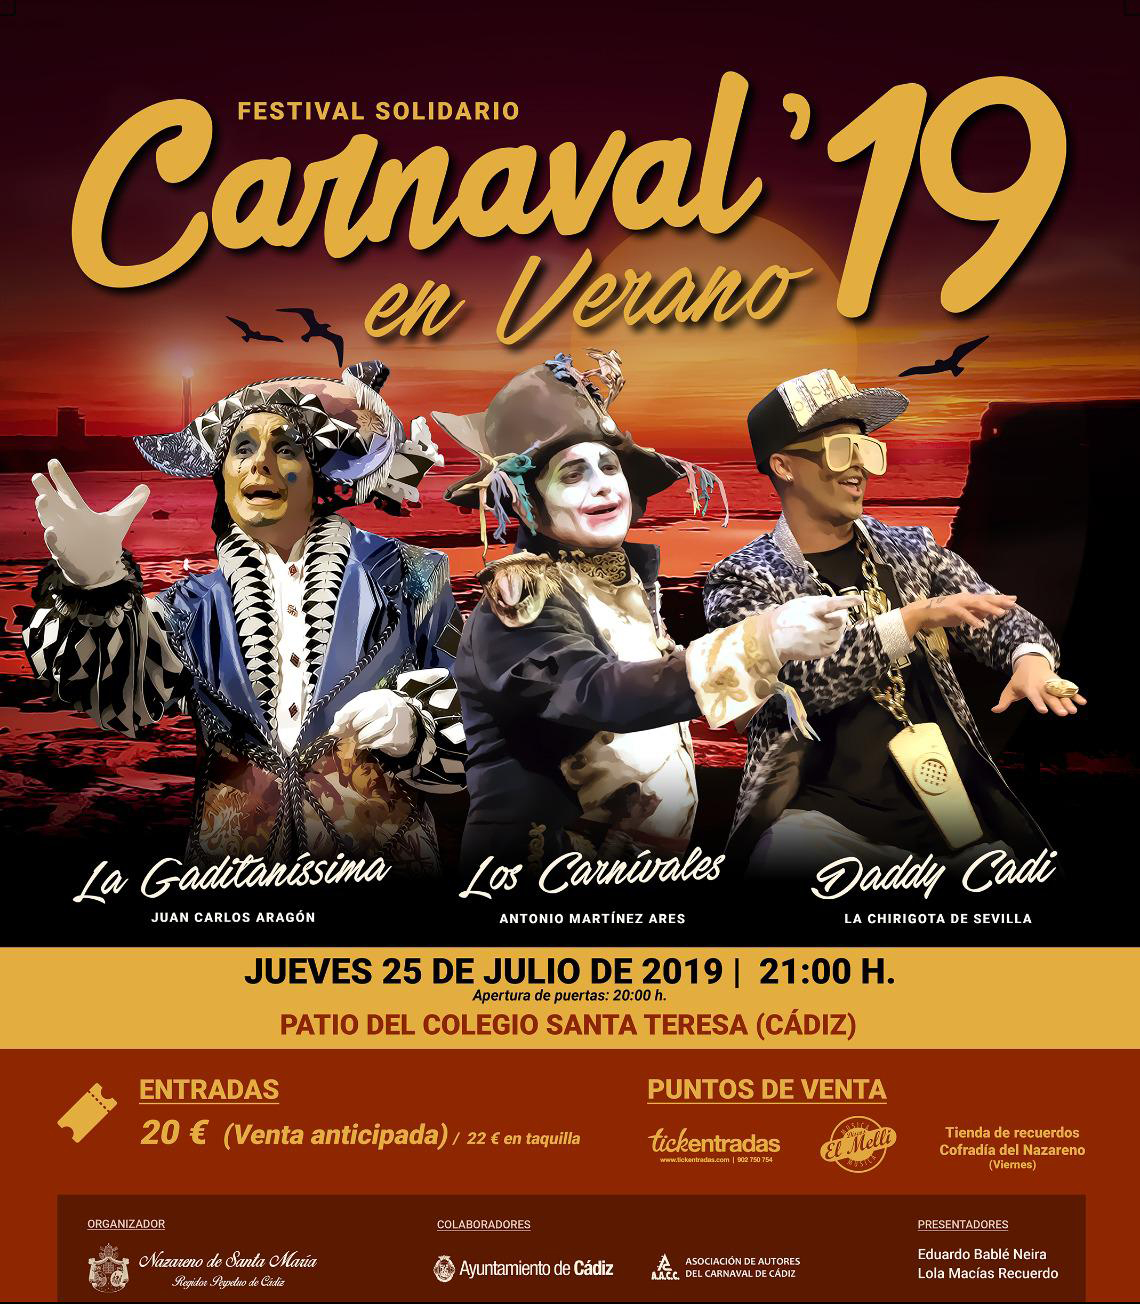 sites/default/files/2019_AGENDA/carnaval/cadiz/santa-teresa.jpg